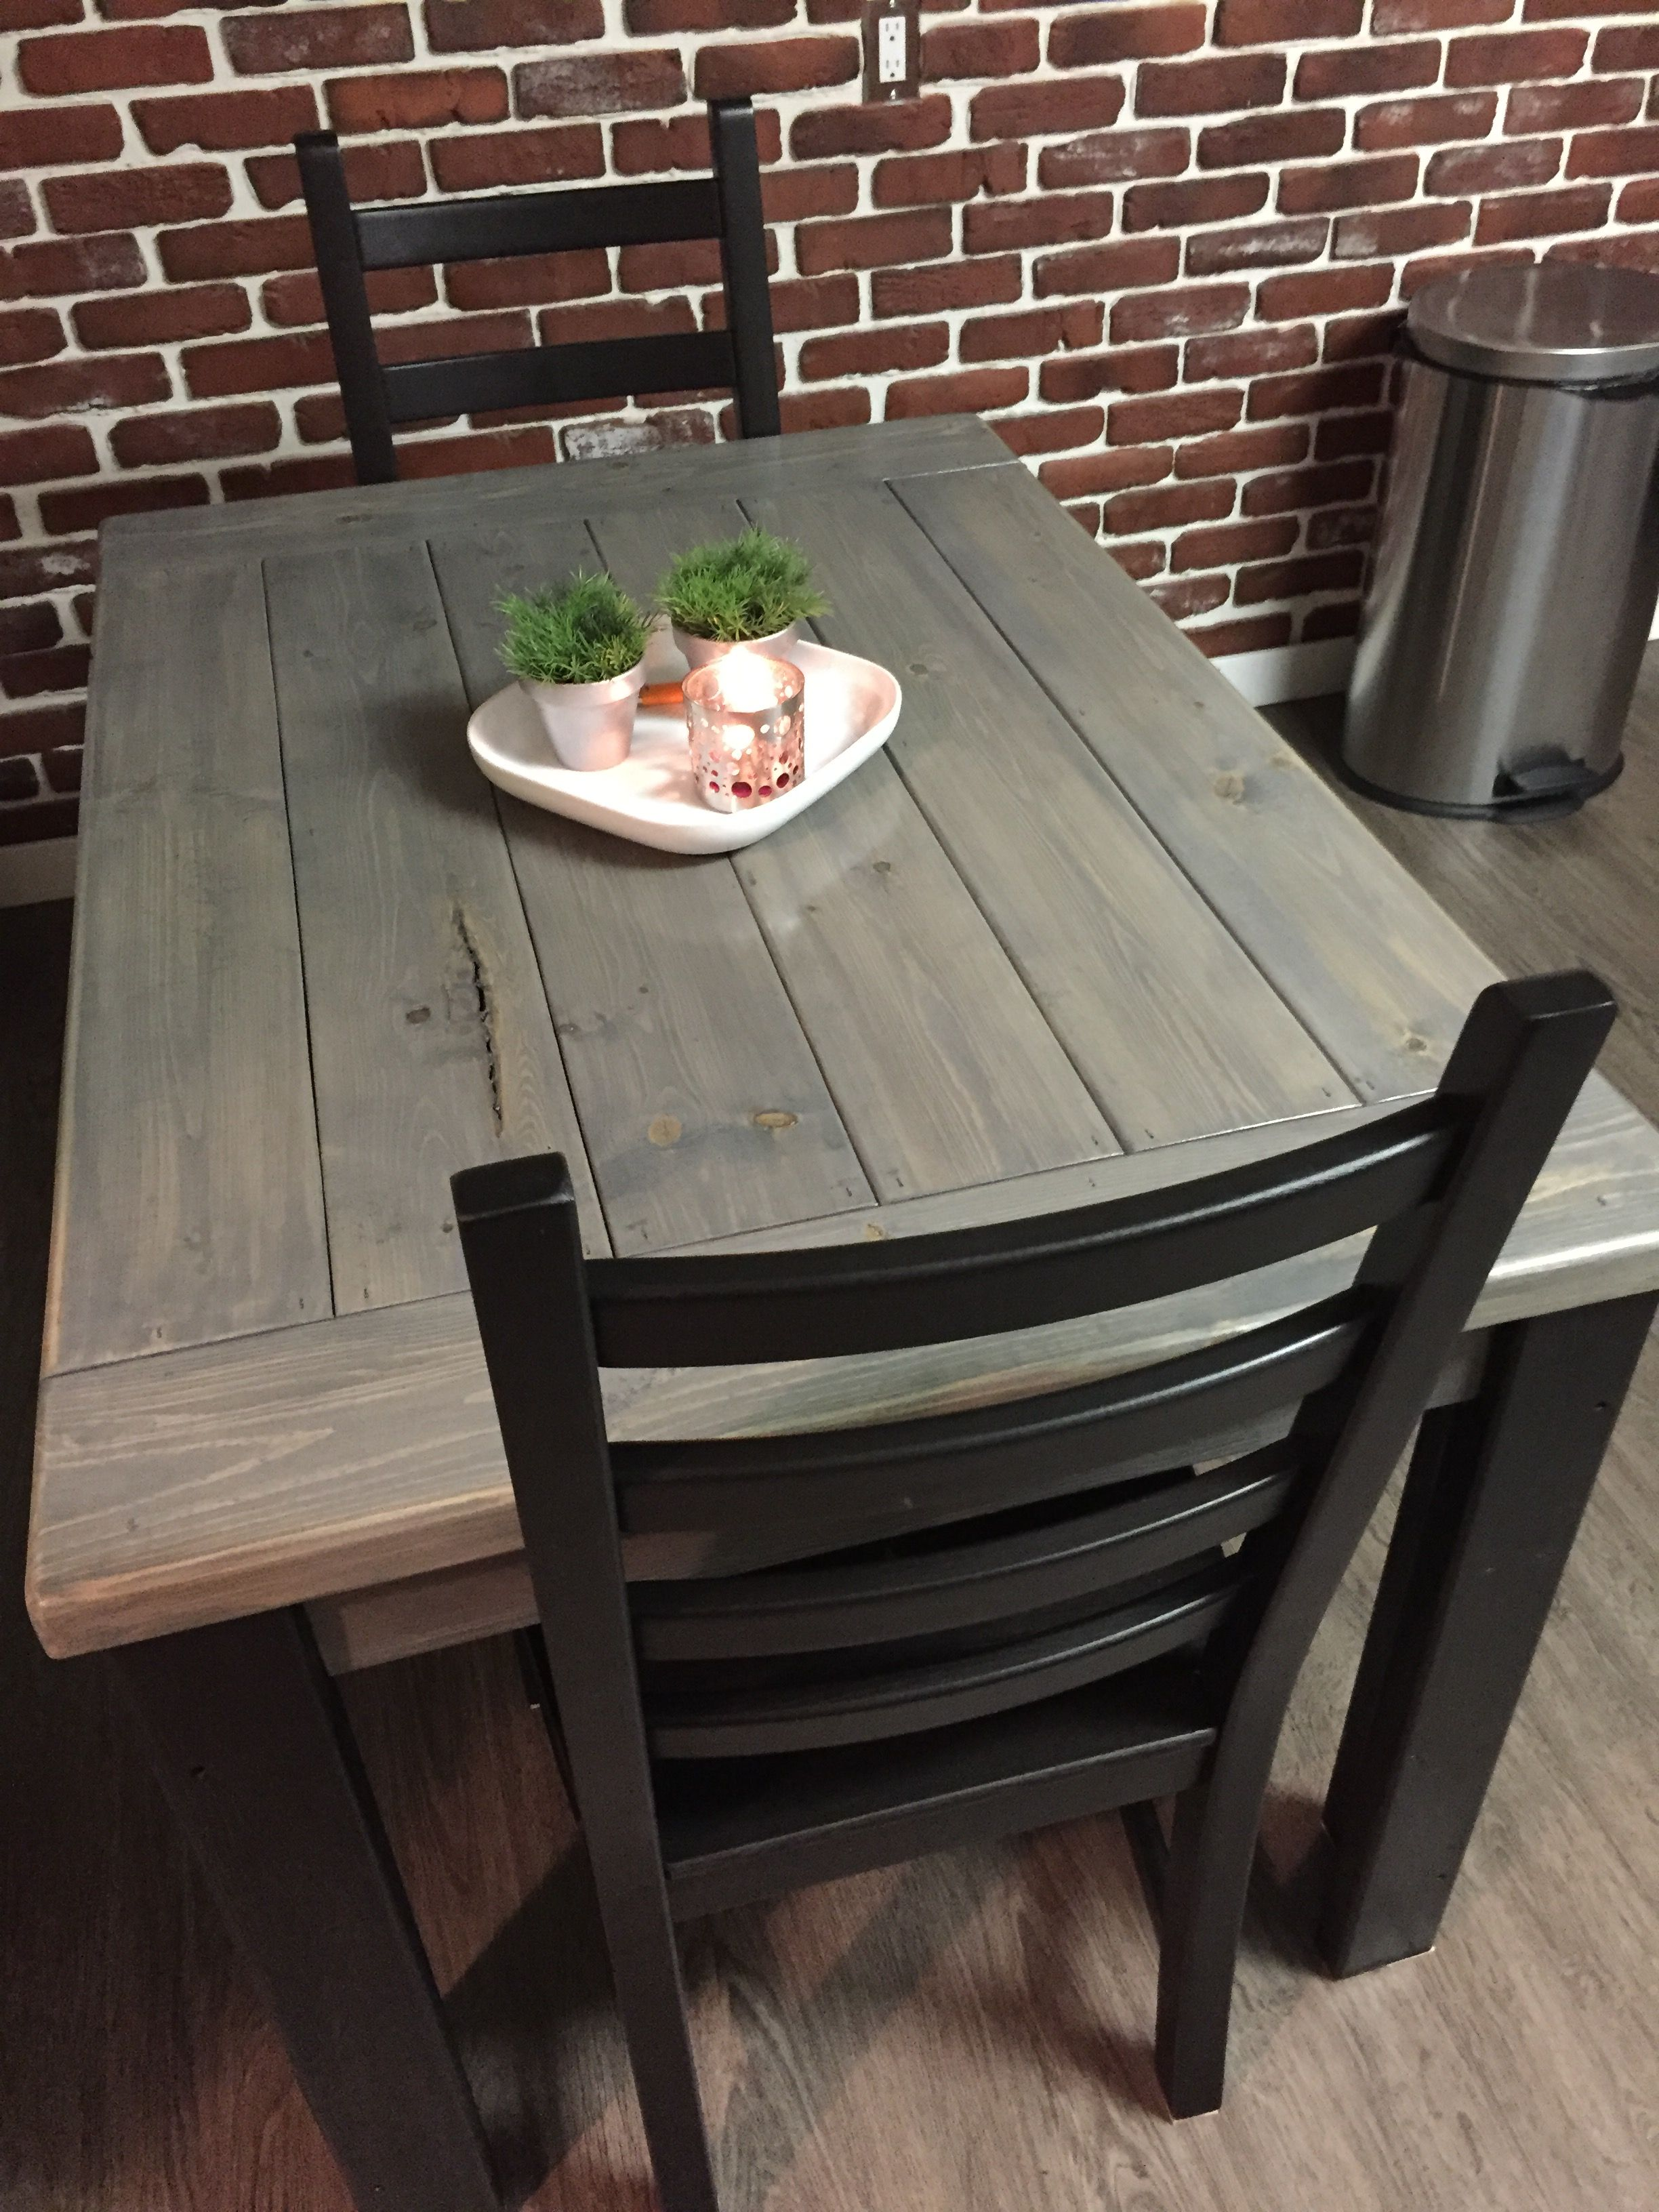 5ft Long Harvest Leg Table In Ebony And Clic Grey Stain